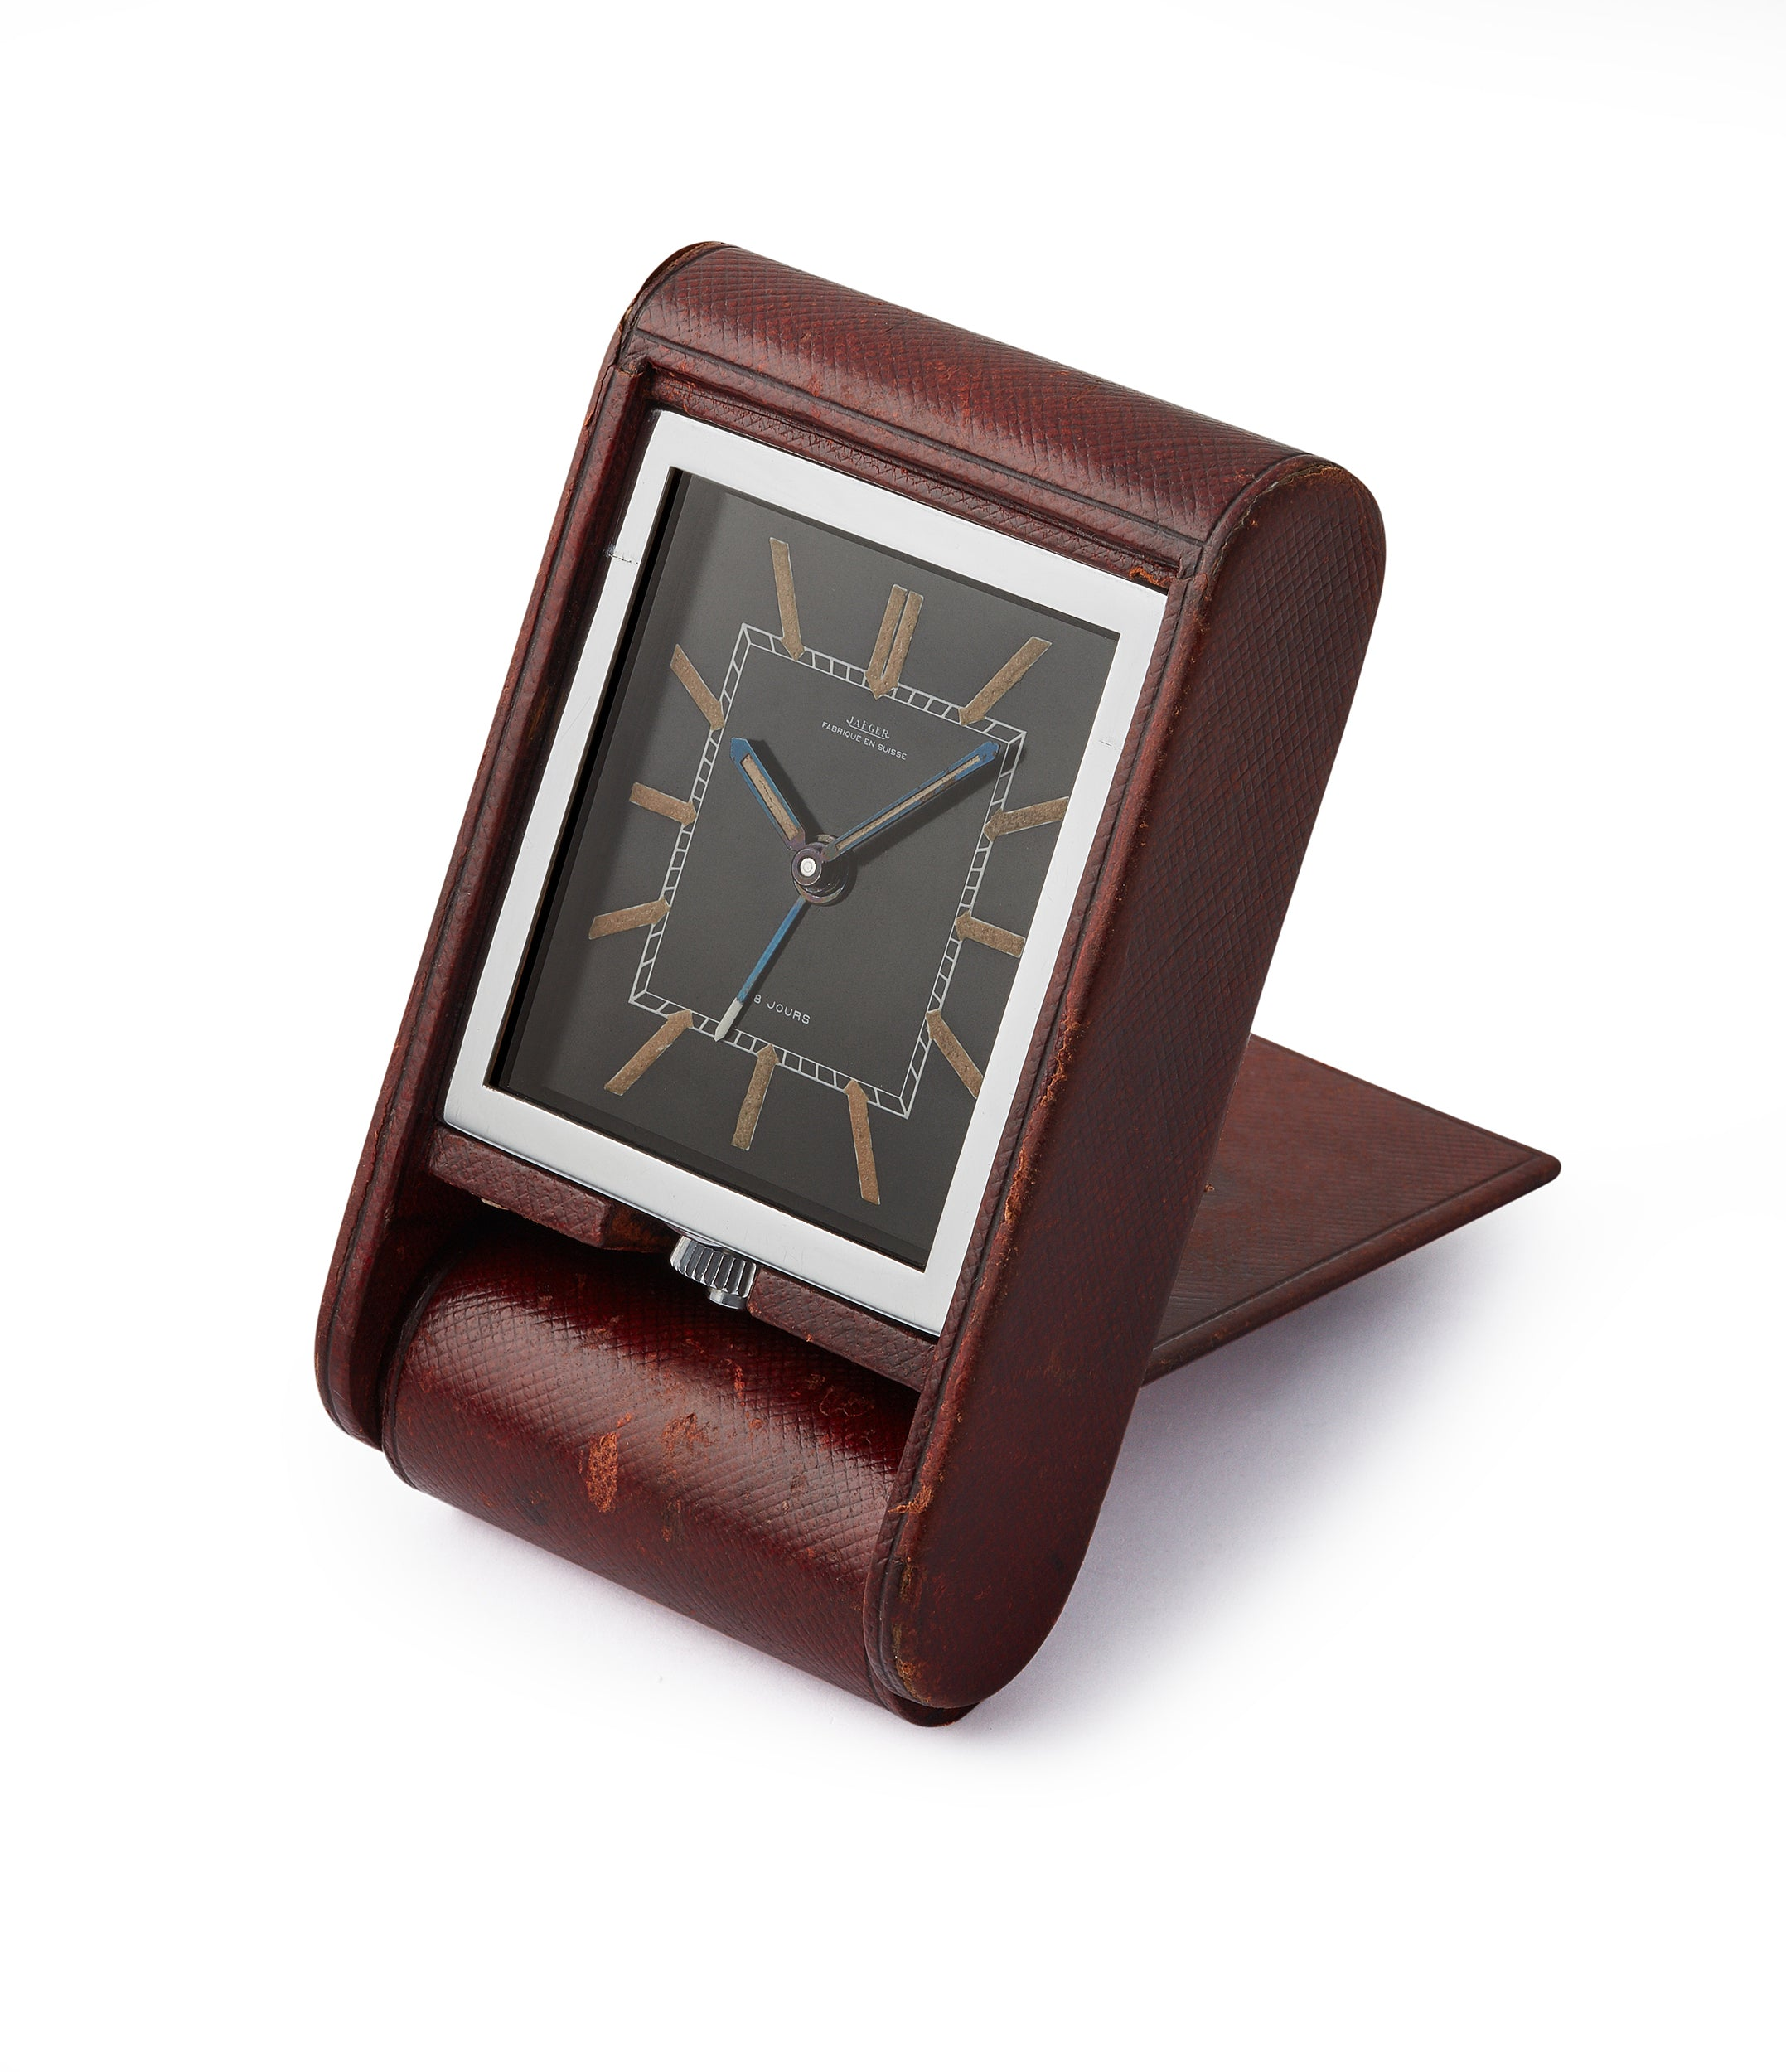 original Jaeger-LeCoultre travel alarm clock with black dial at A Collected Man London